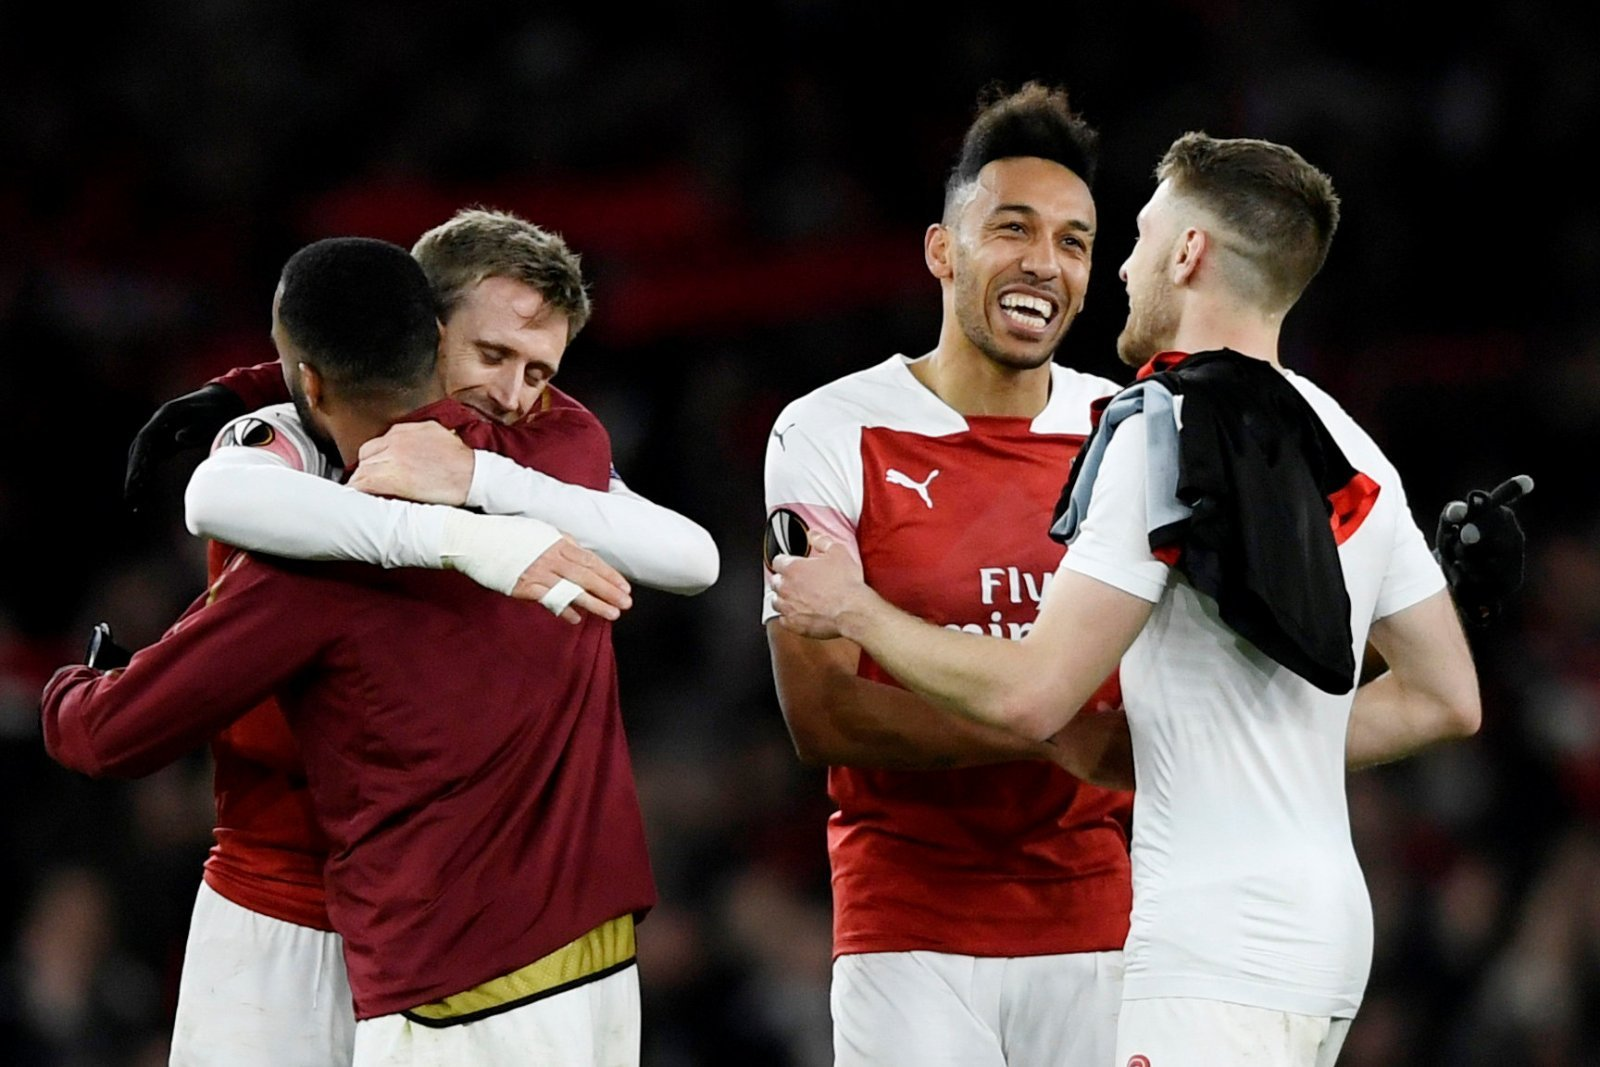 Arsenal: There's passion, but passion isn't enough